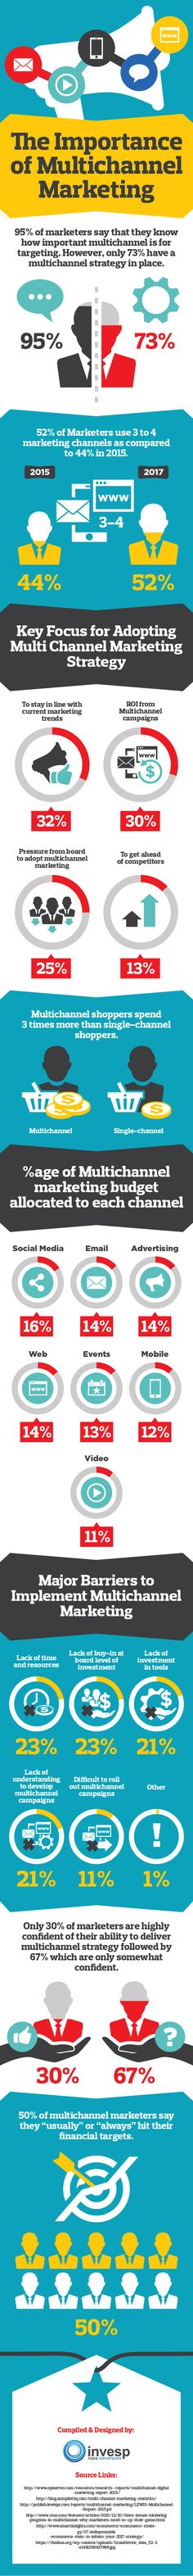 The Importance Of Multichannel Marketing #Infographic #Marketing